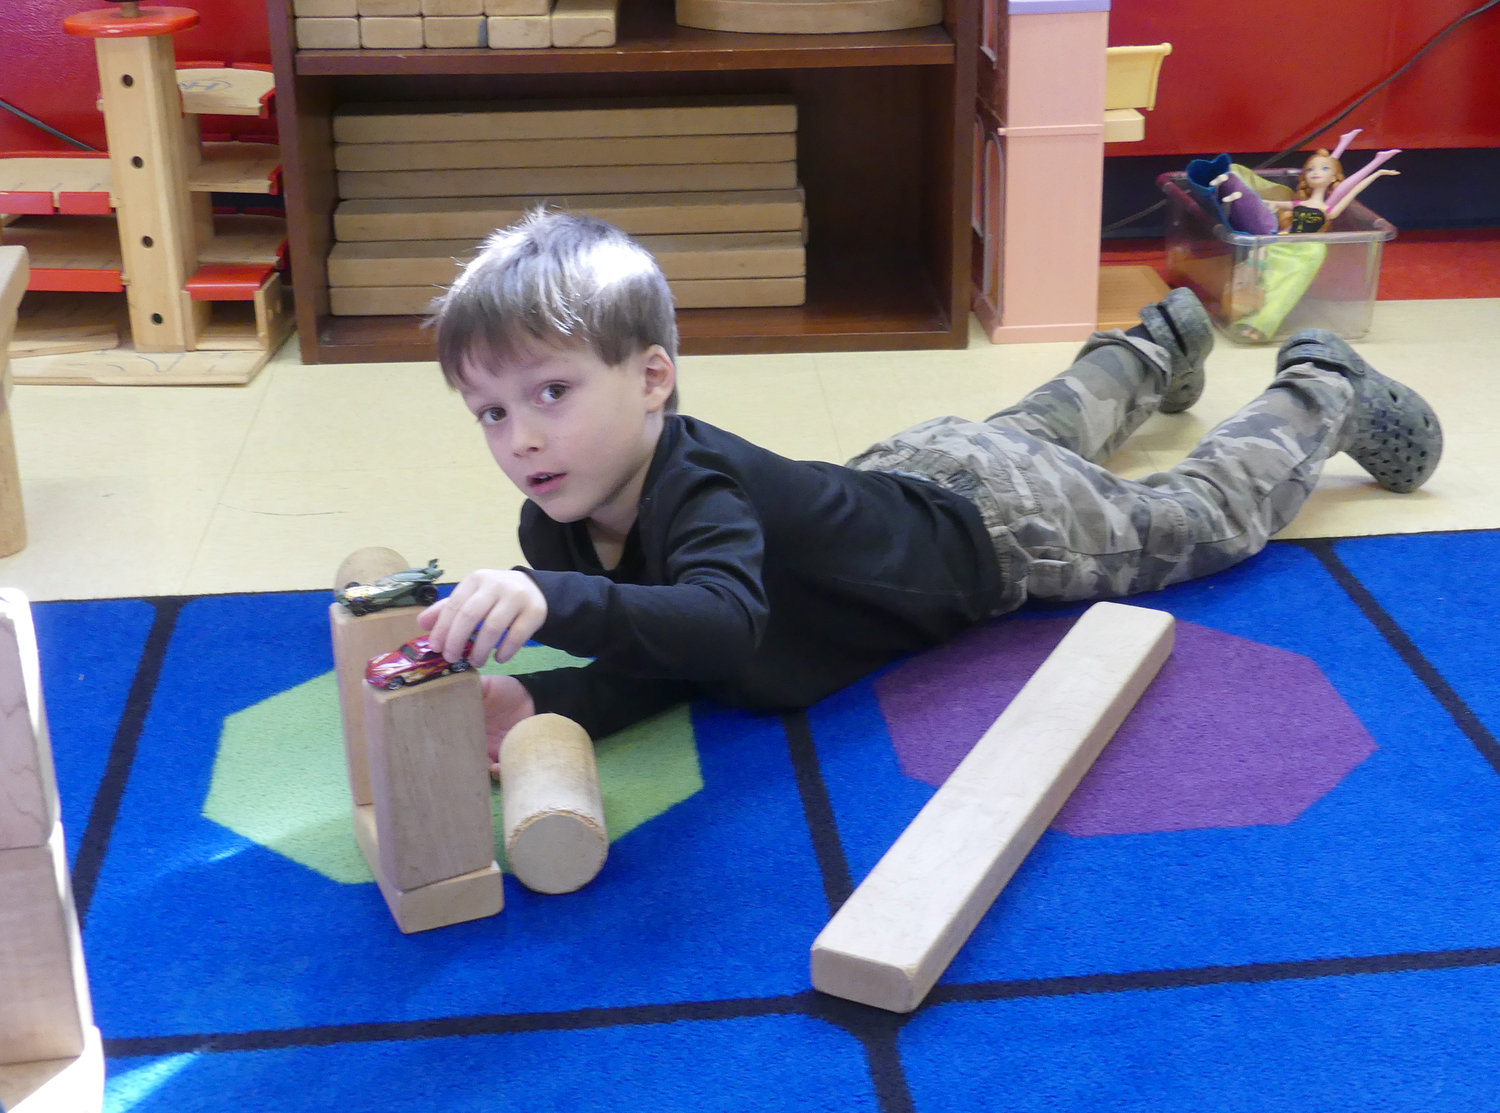 CONSTRUCTIVE PLAY — A child enrolled in the St. James Church Day School program in Clinton enjoys time building with blocks and playing with race cars during a special morning play time before academic activities.